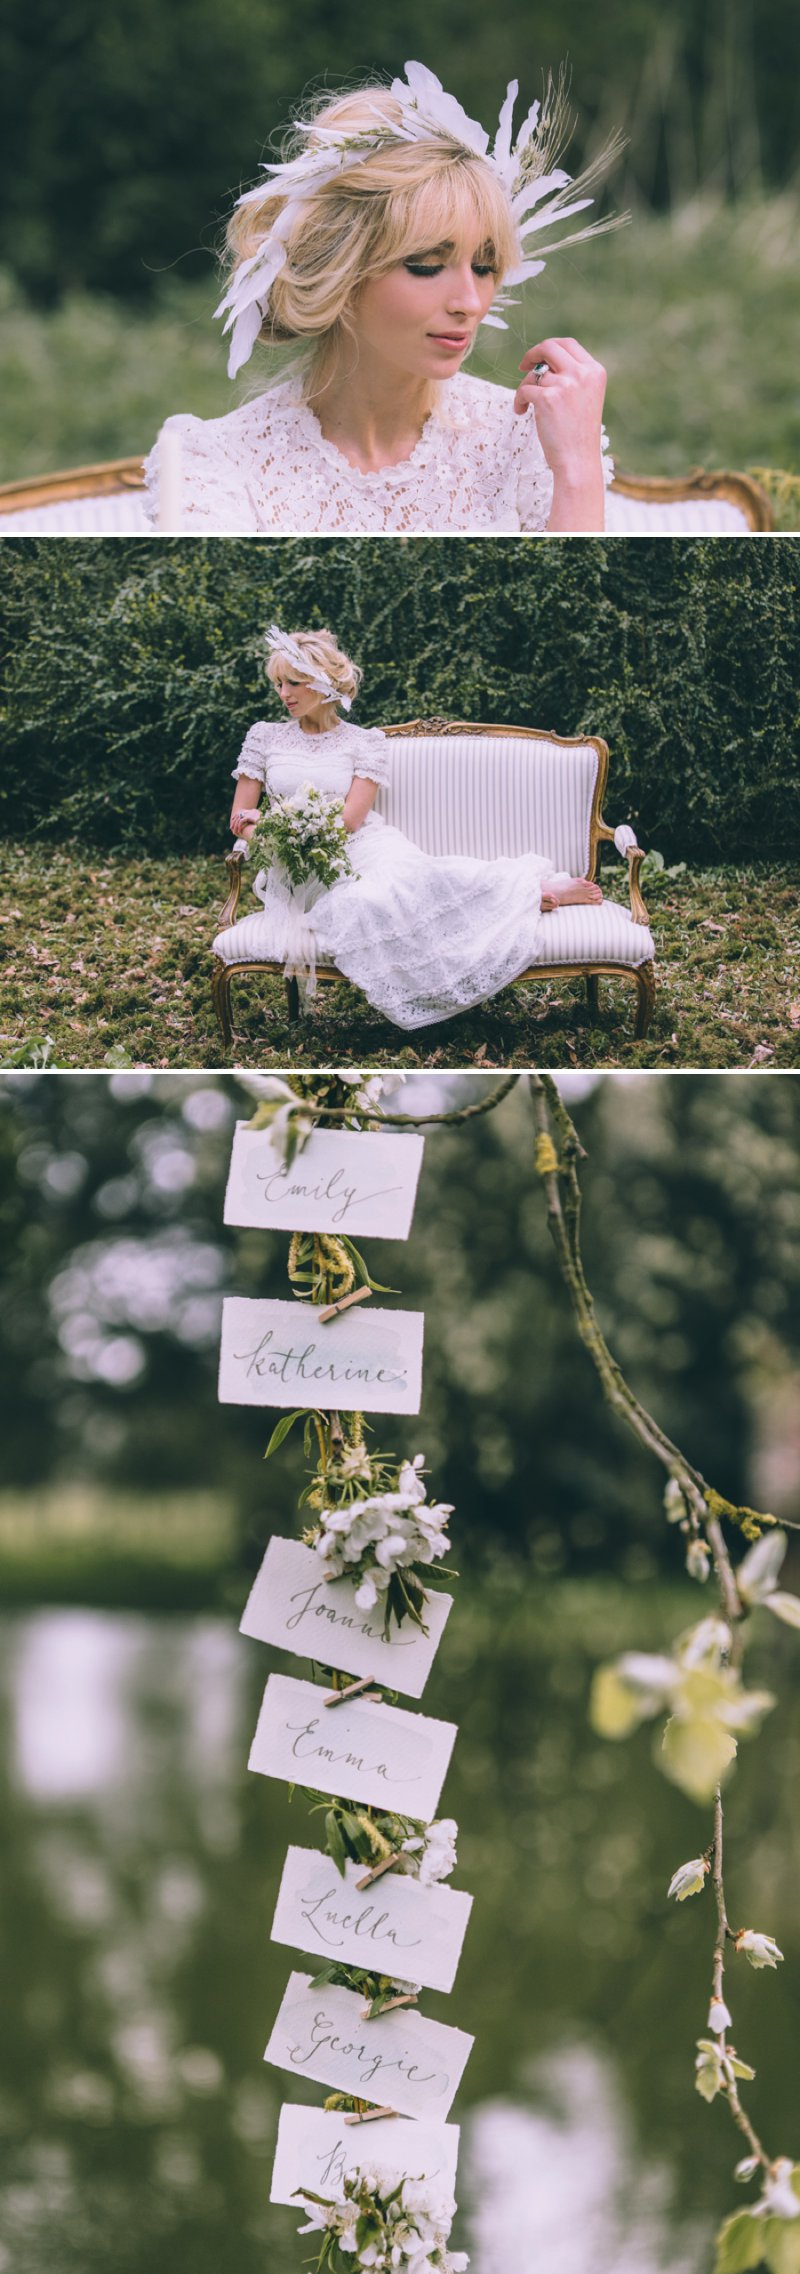 Rustic Bridal Shoot From Coco Venues And Katrina Otter Weddings And Events Inspired By The Promise Of Spring At Narborough Hall Gardens With Dresses From Rue De Seine Bridal With Images From Rebecca Goddard 5